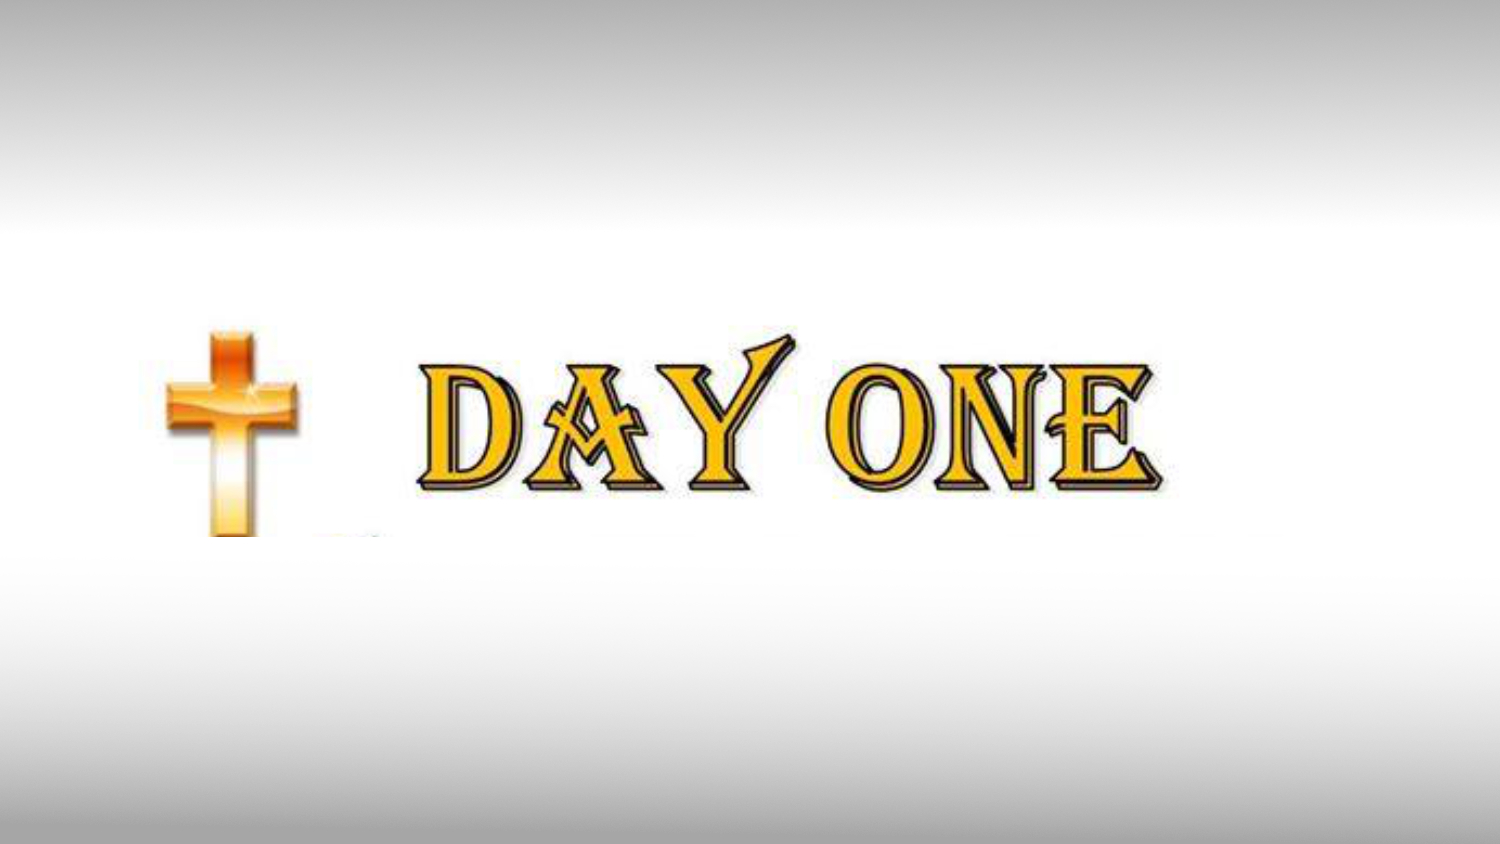 Day One in Altoona, Pennsylvania logo